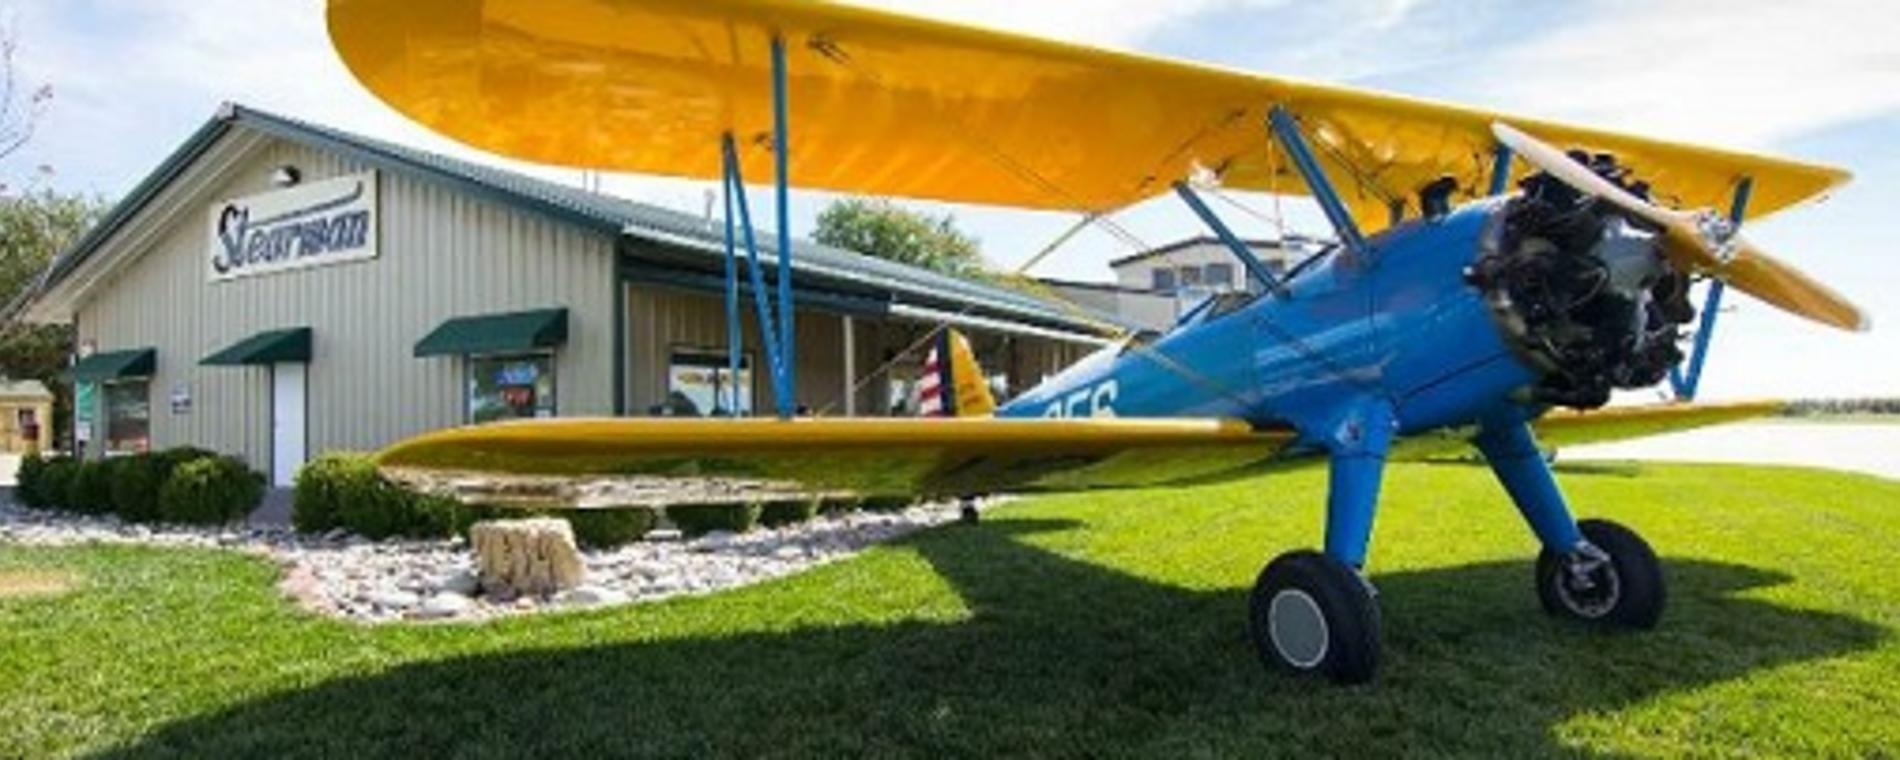 Stearman Bar/Grill Exterior with Plane Visit Wichita